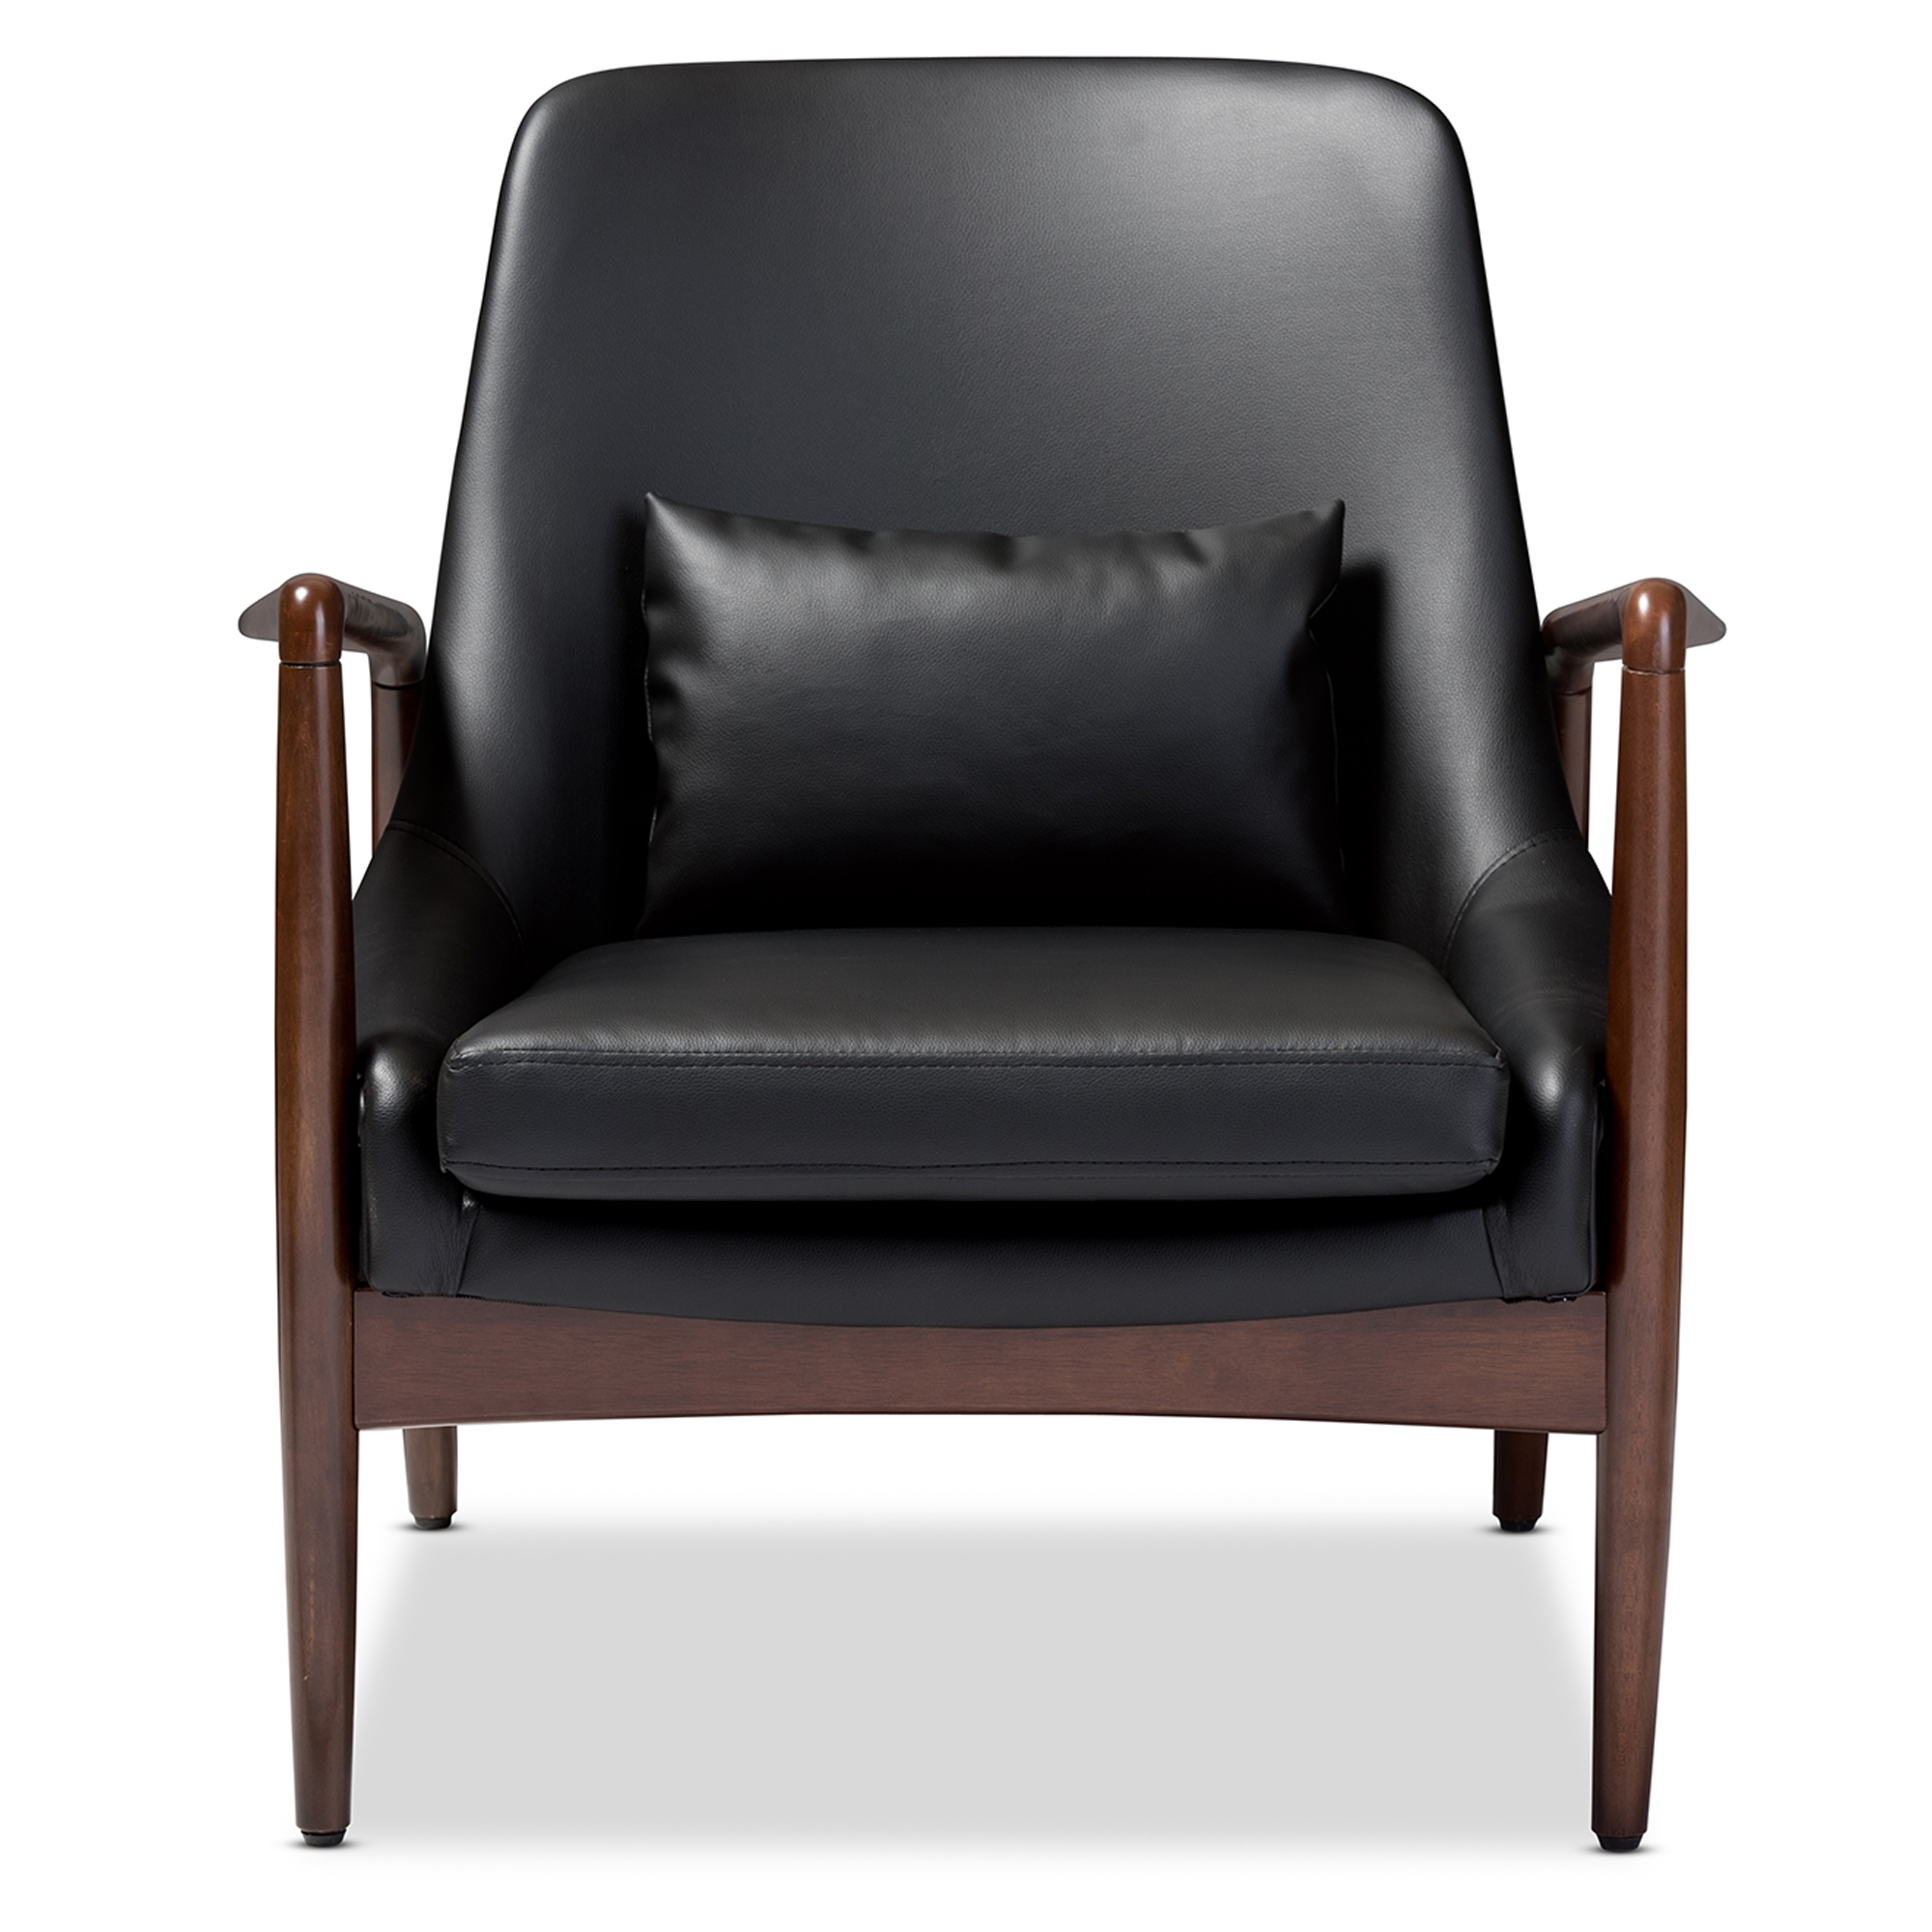 Superb Baxton Studio Carter Mid Century Modern Retro Black Faux Leather  Upholstered Leisure Accent Chair In Walnut Wood Frame